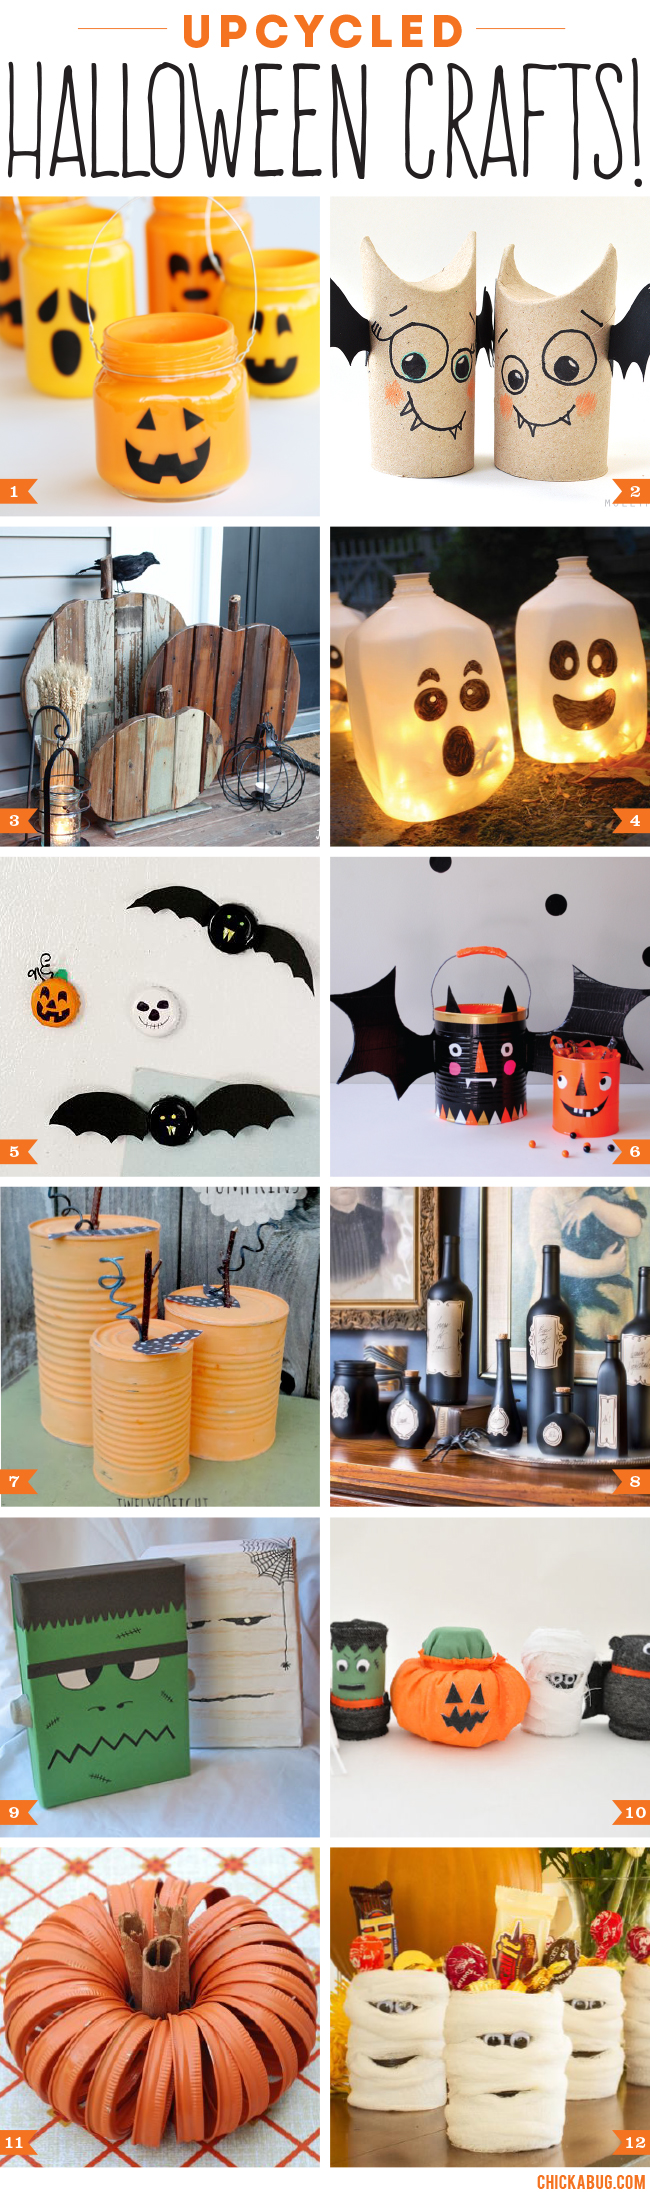 Upcycled Halloween crafts and decor